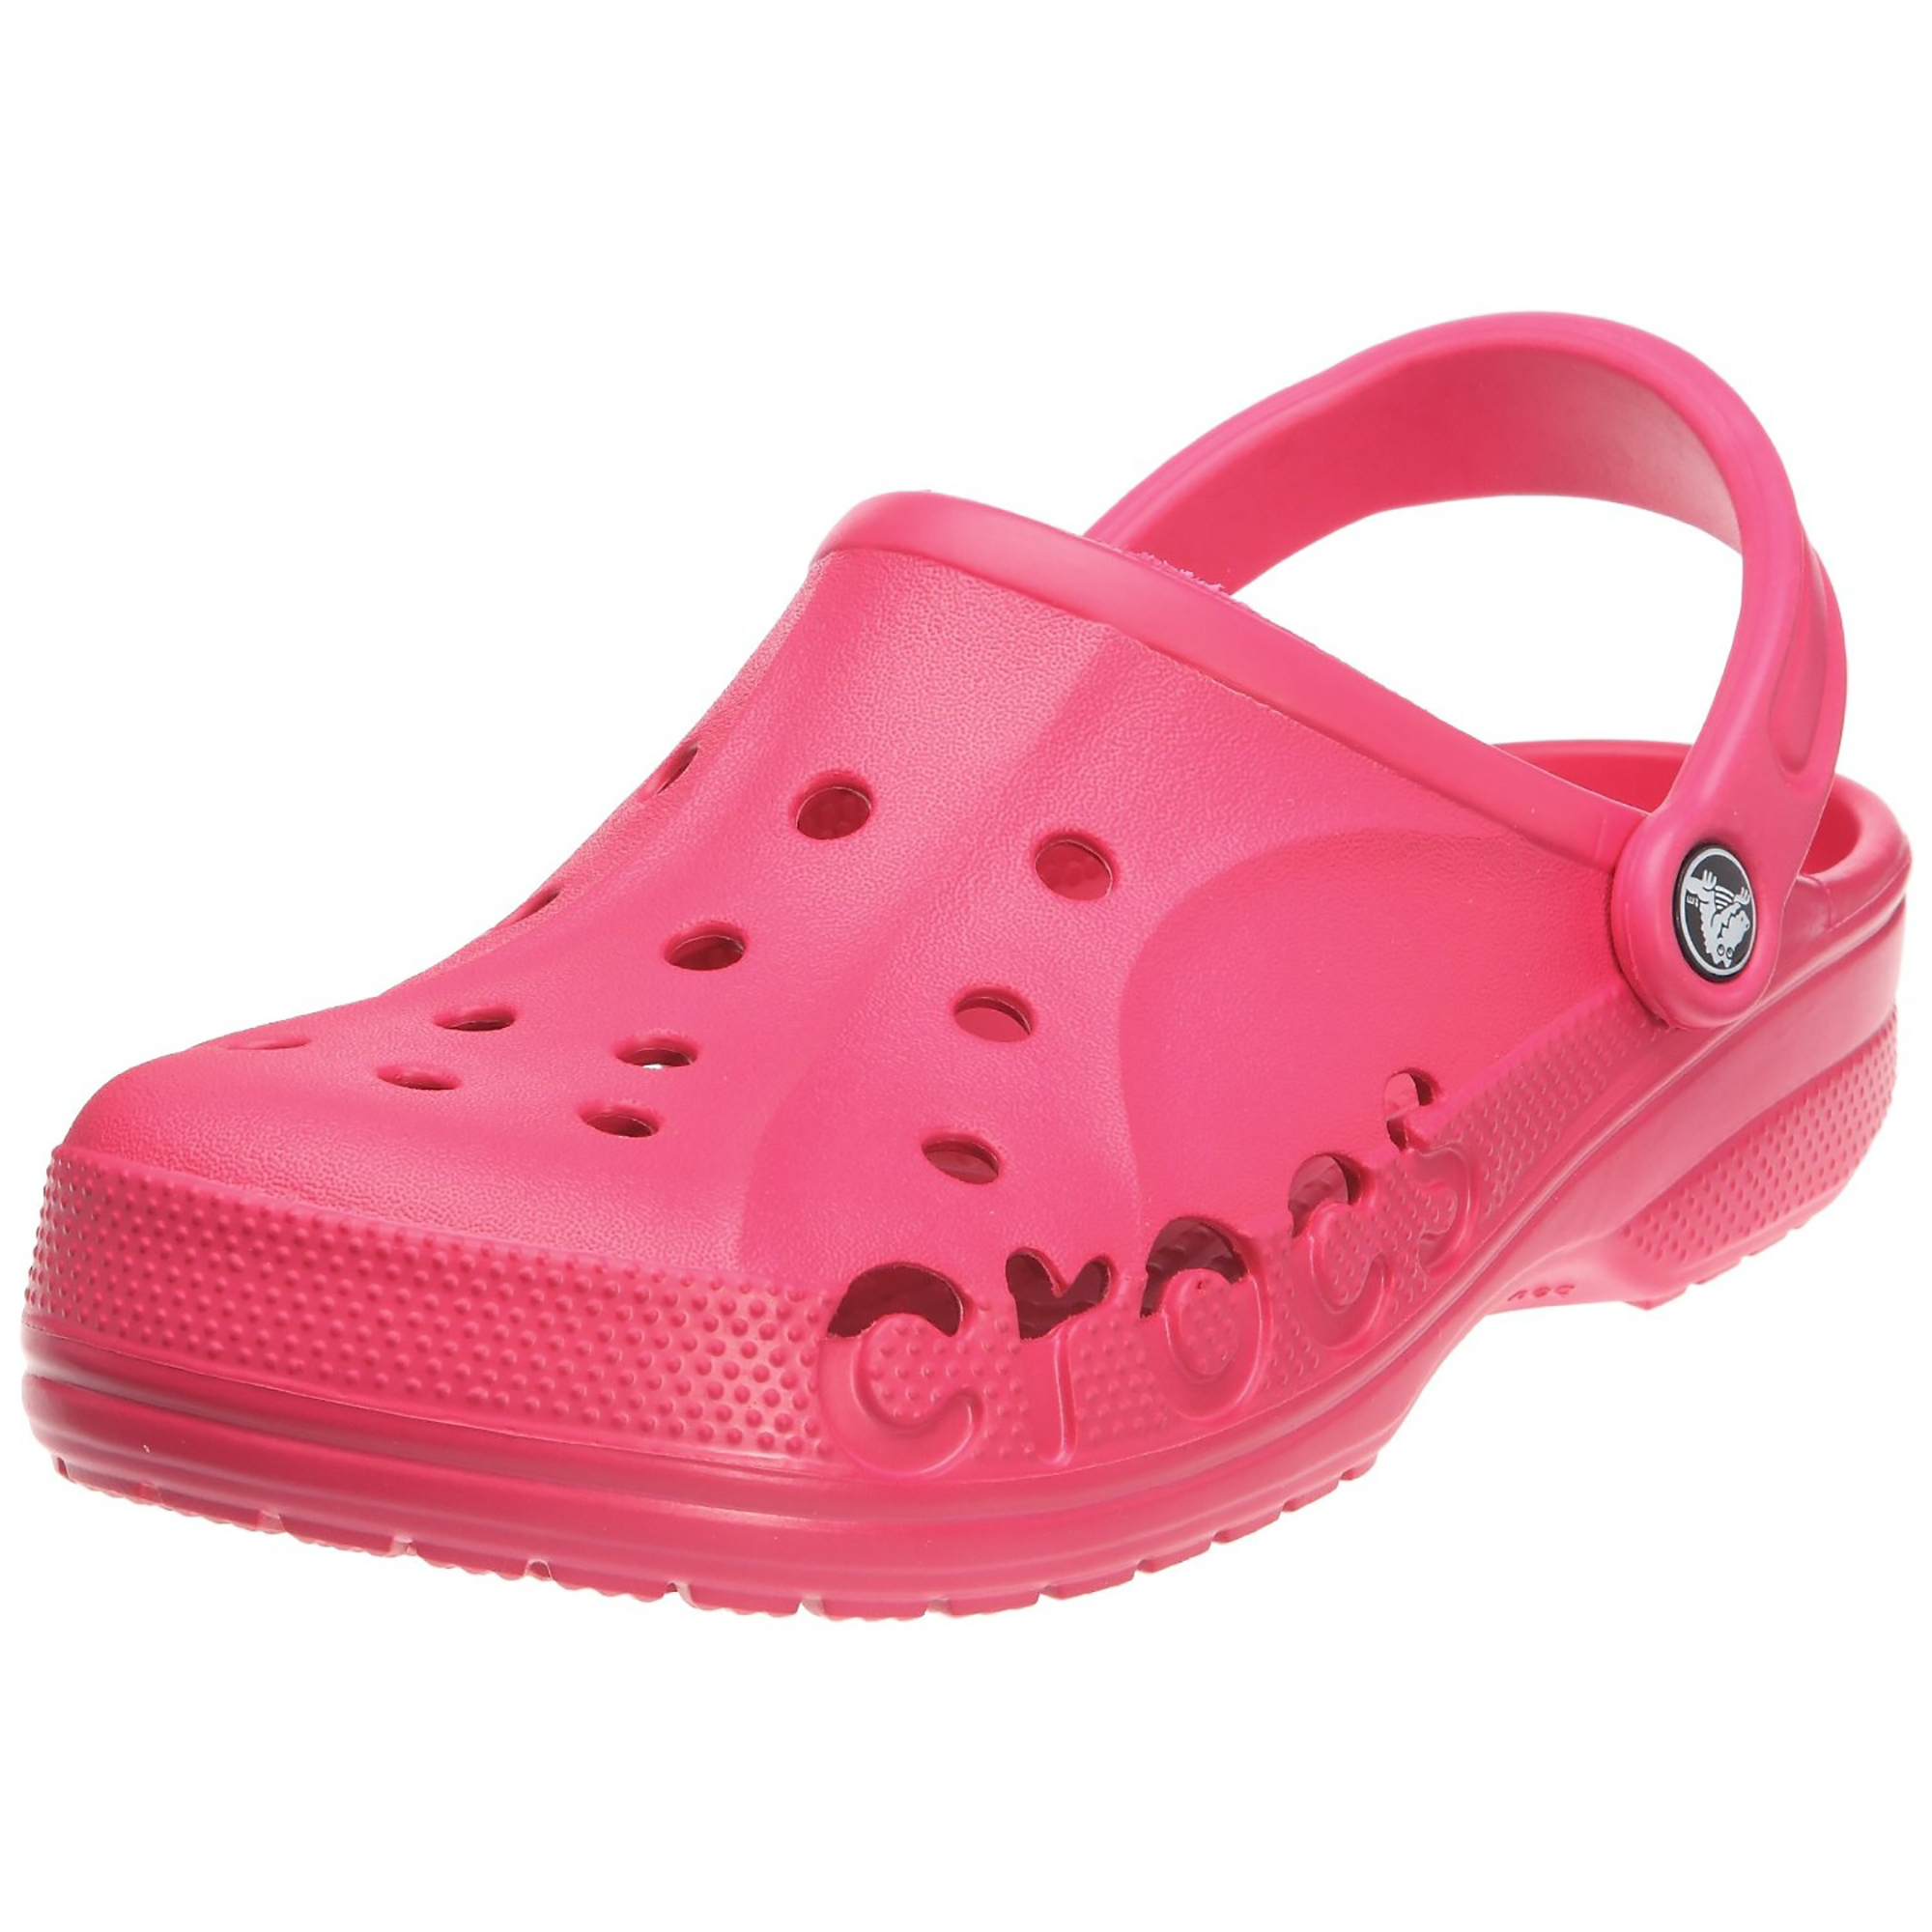 Kids' Classic Crocs You can't beat the classics - especially when it comes to finding comfortable, durable shoes for your kids that they will also love. Our Kids' Classic Crocs collection features the classic Crocs™ style you know and love, in any color your kiddos want.